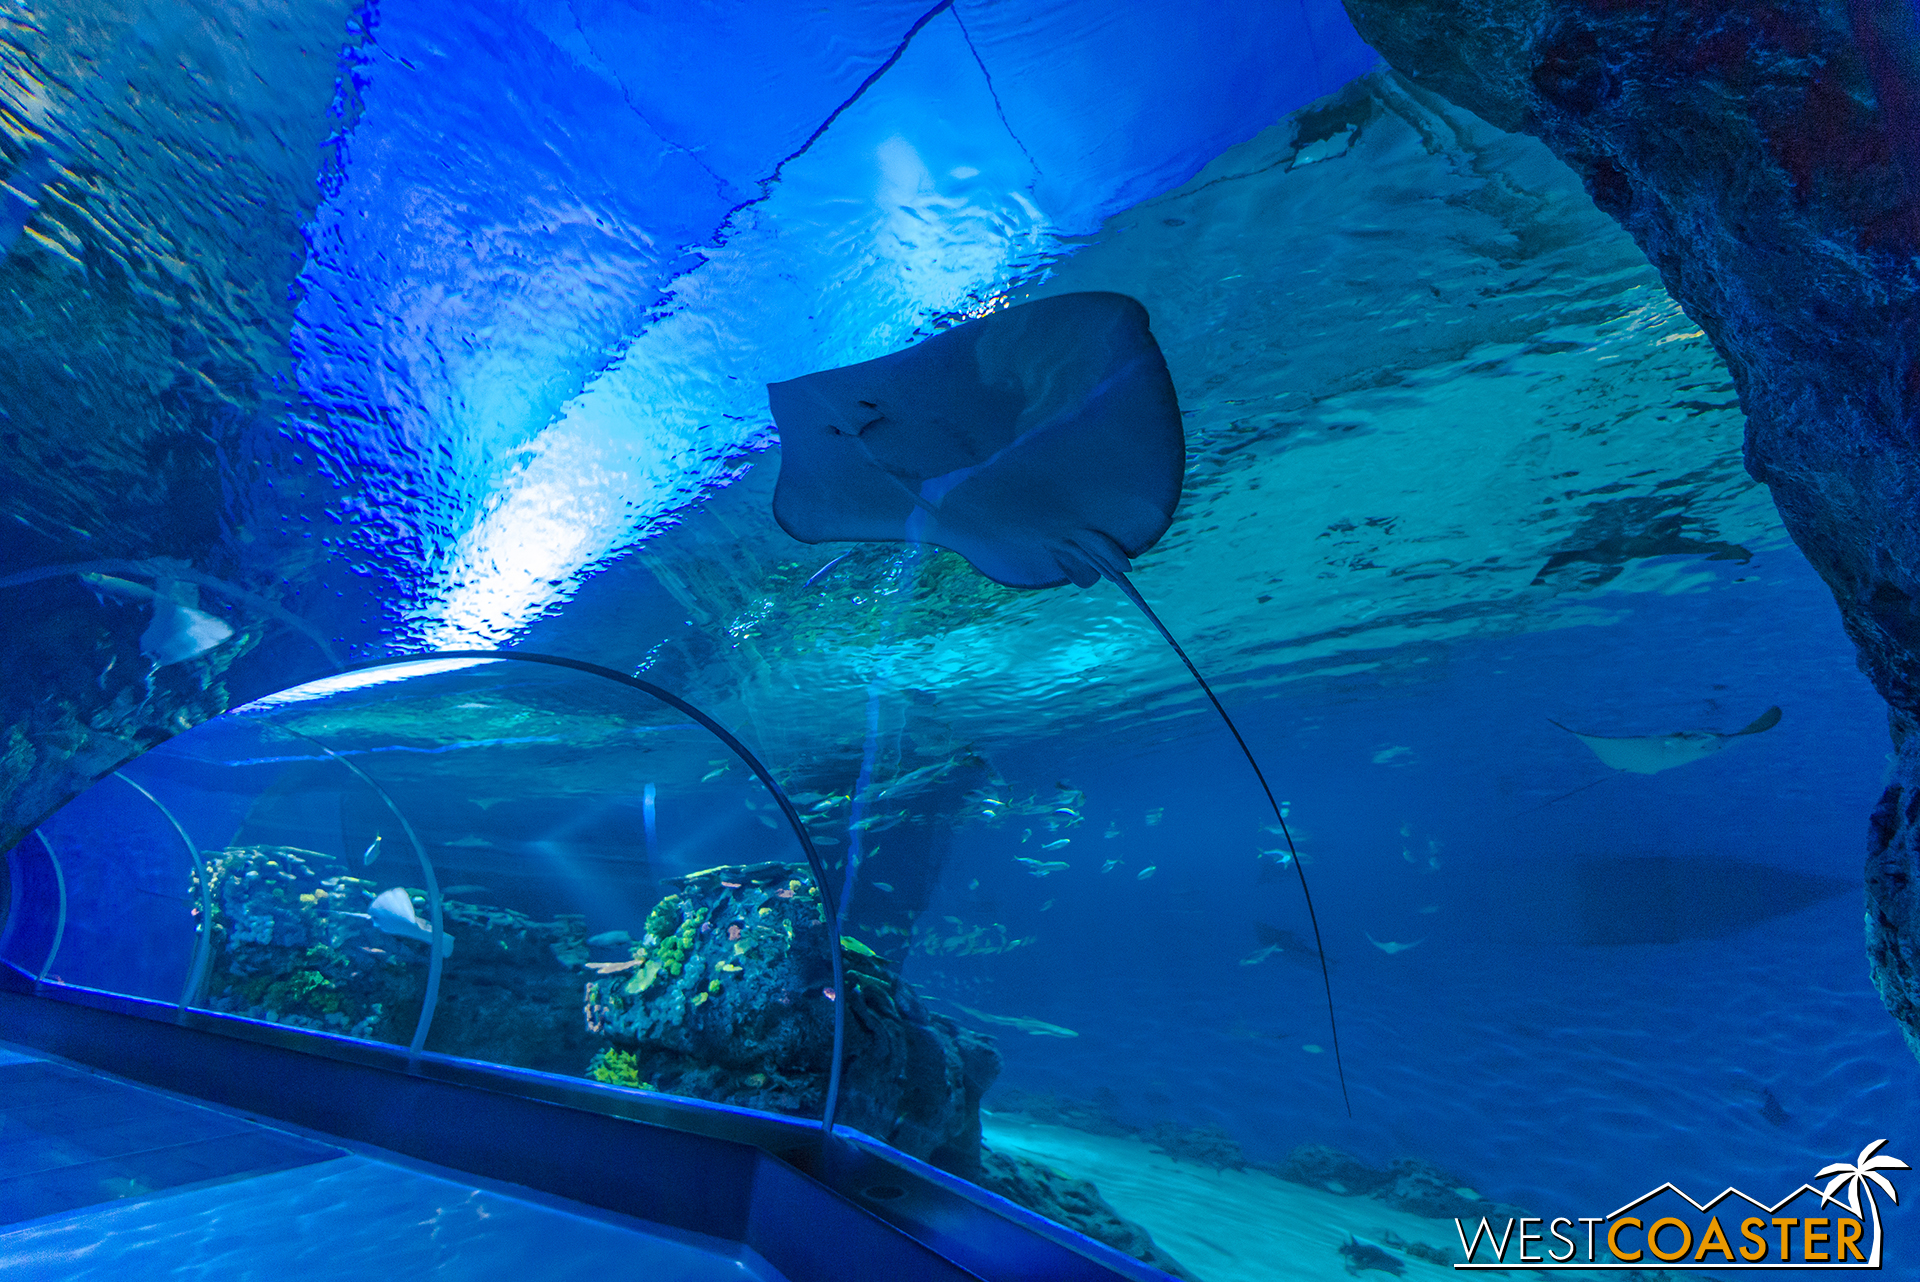 Den Blå Planet is the largest aquarium in Northern Europe and features a wide collection marine life.